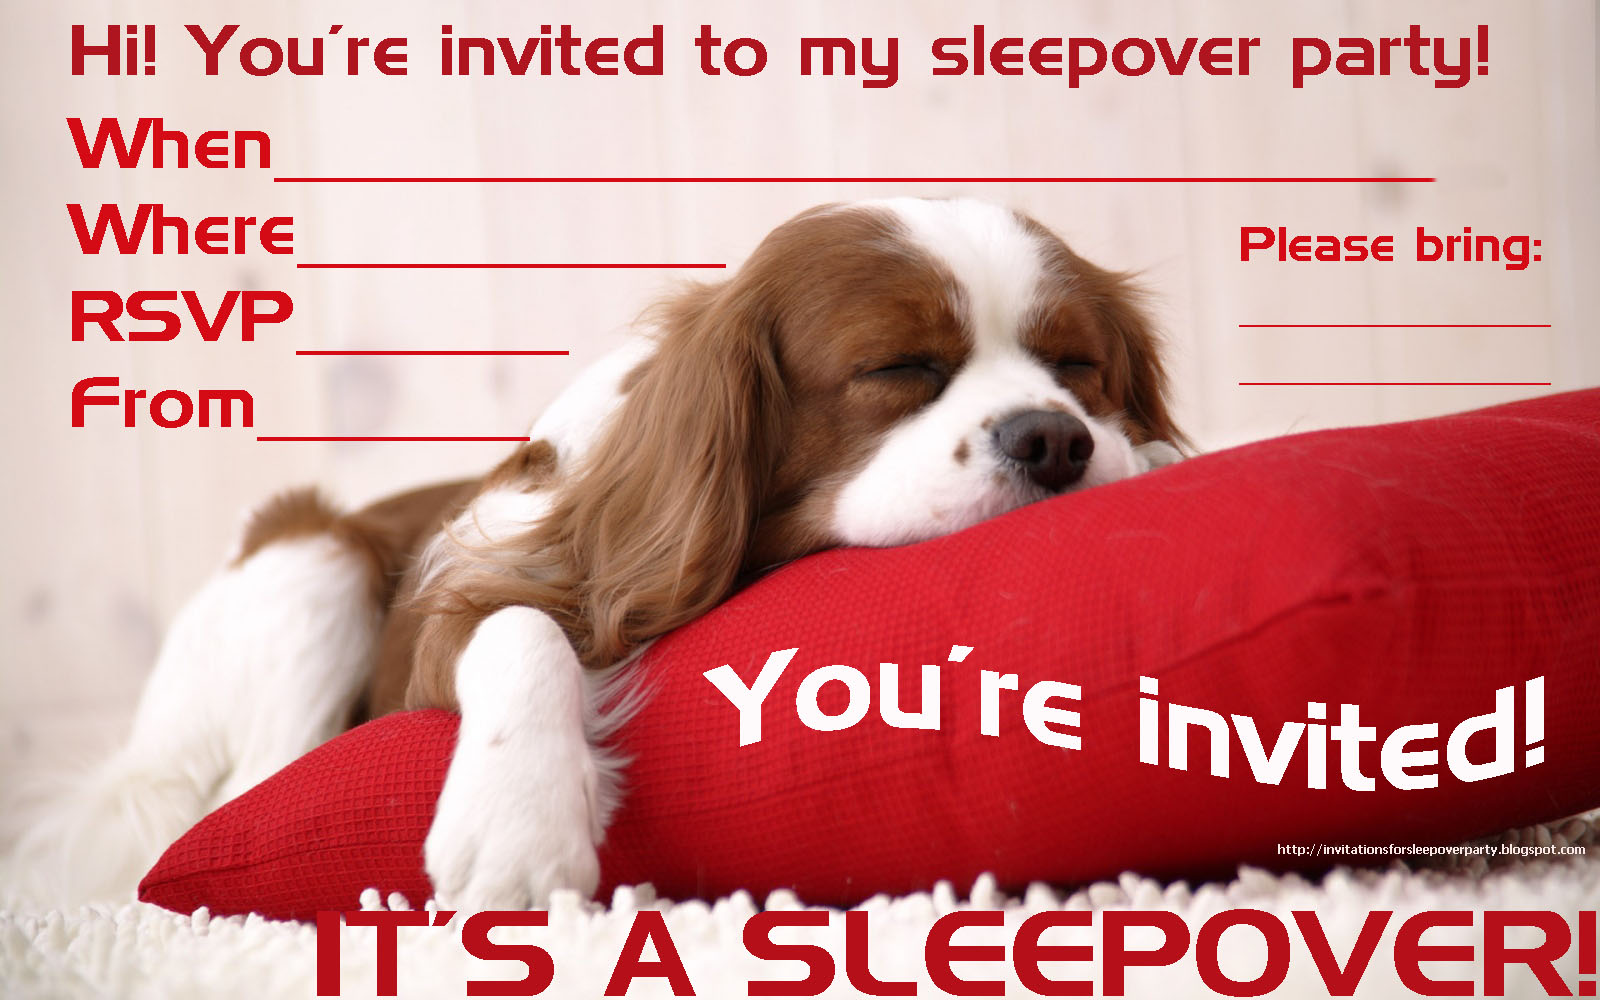 INVITATIONS FOR SLEEPOVER PARTY – Invitations for Sleepover Party